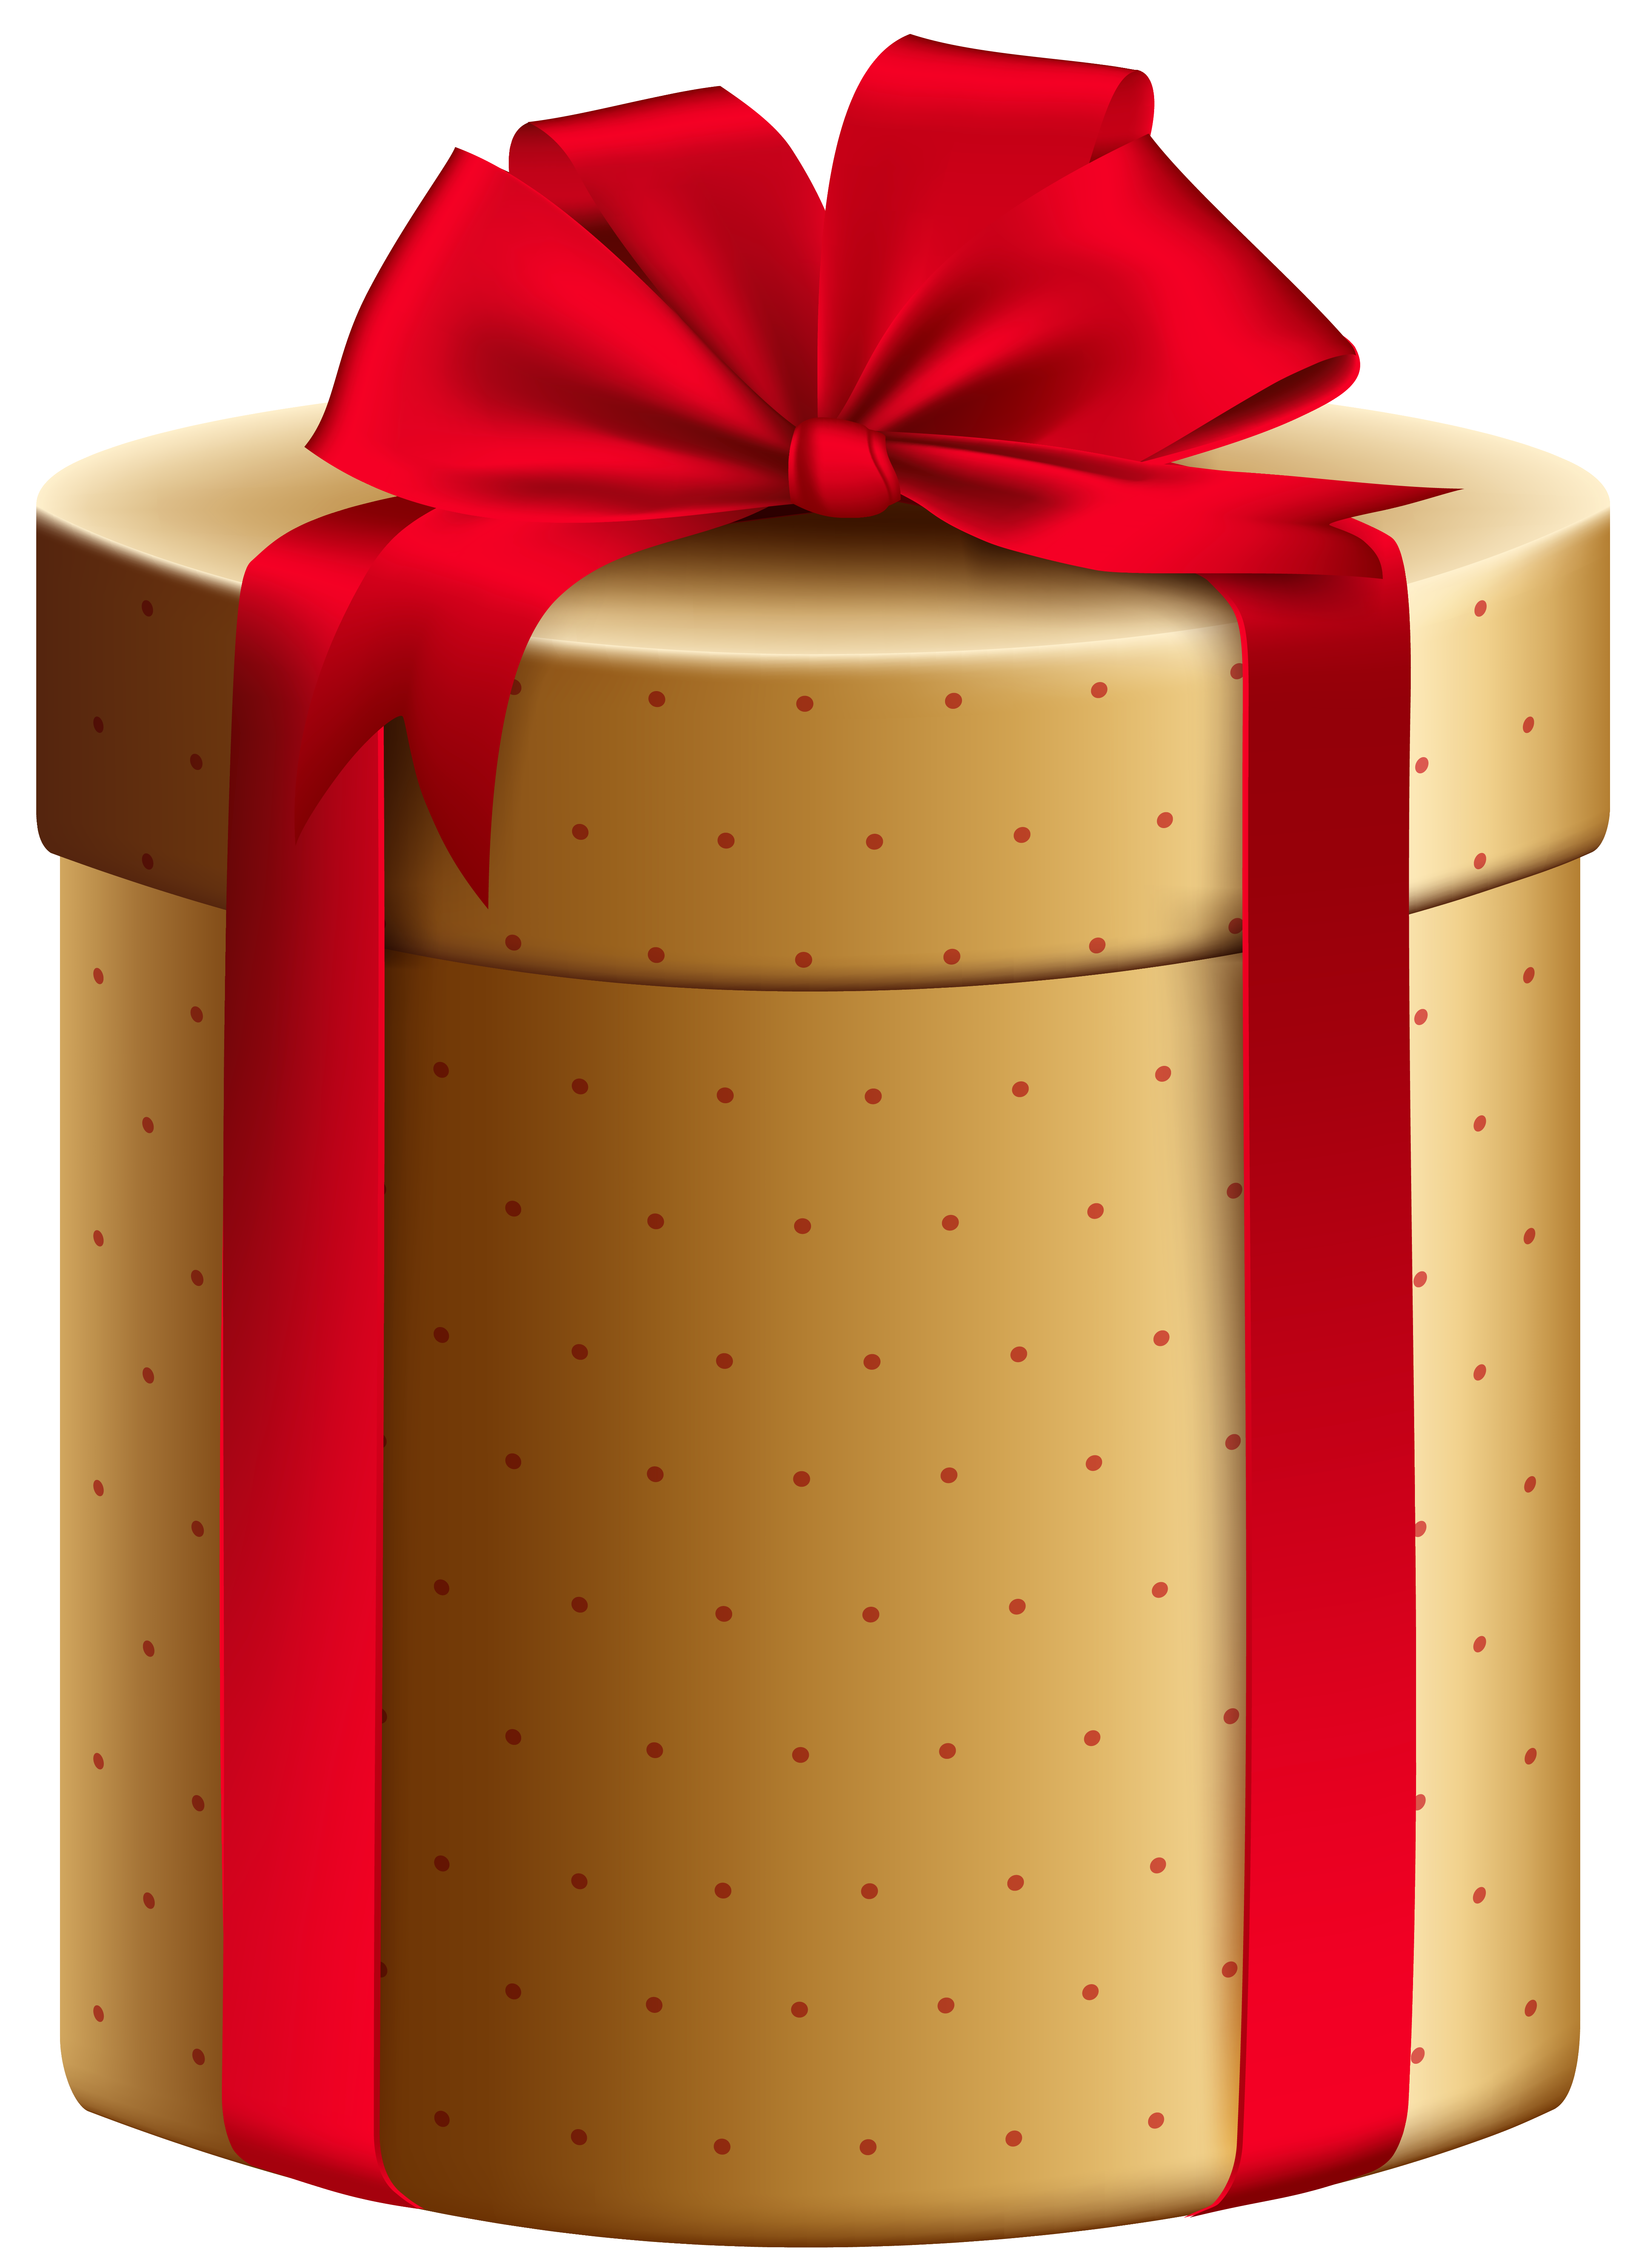 Gifts clipart hat box, Gifts hat box Transparent FREE for.